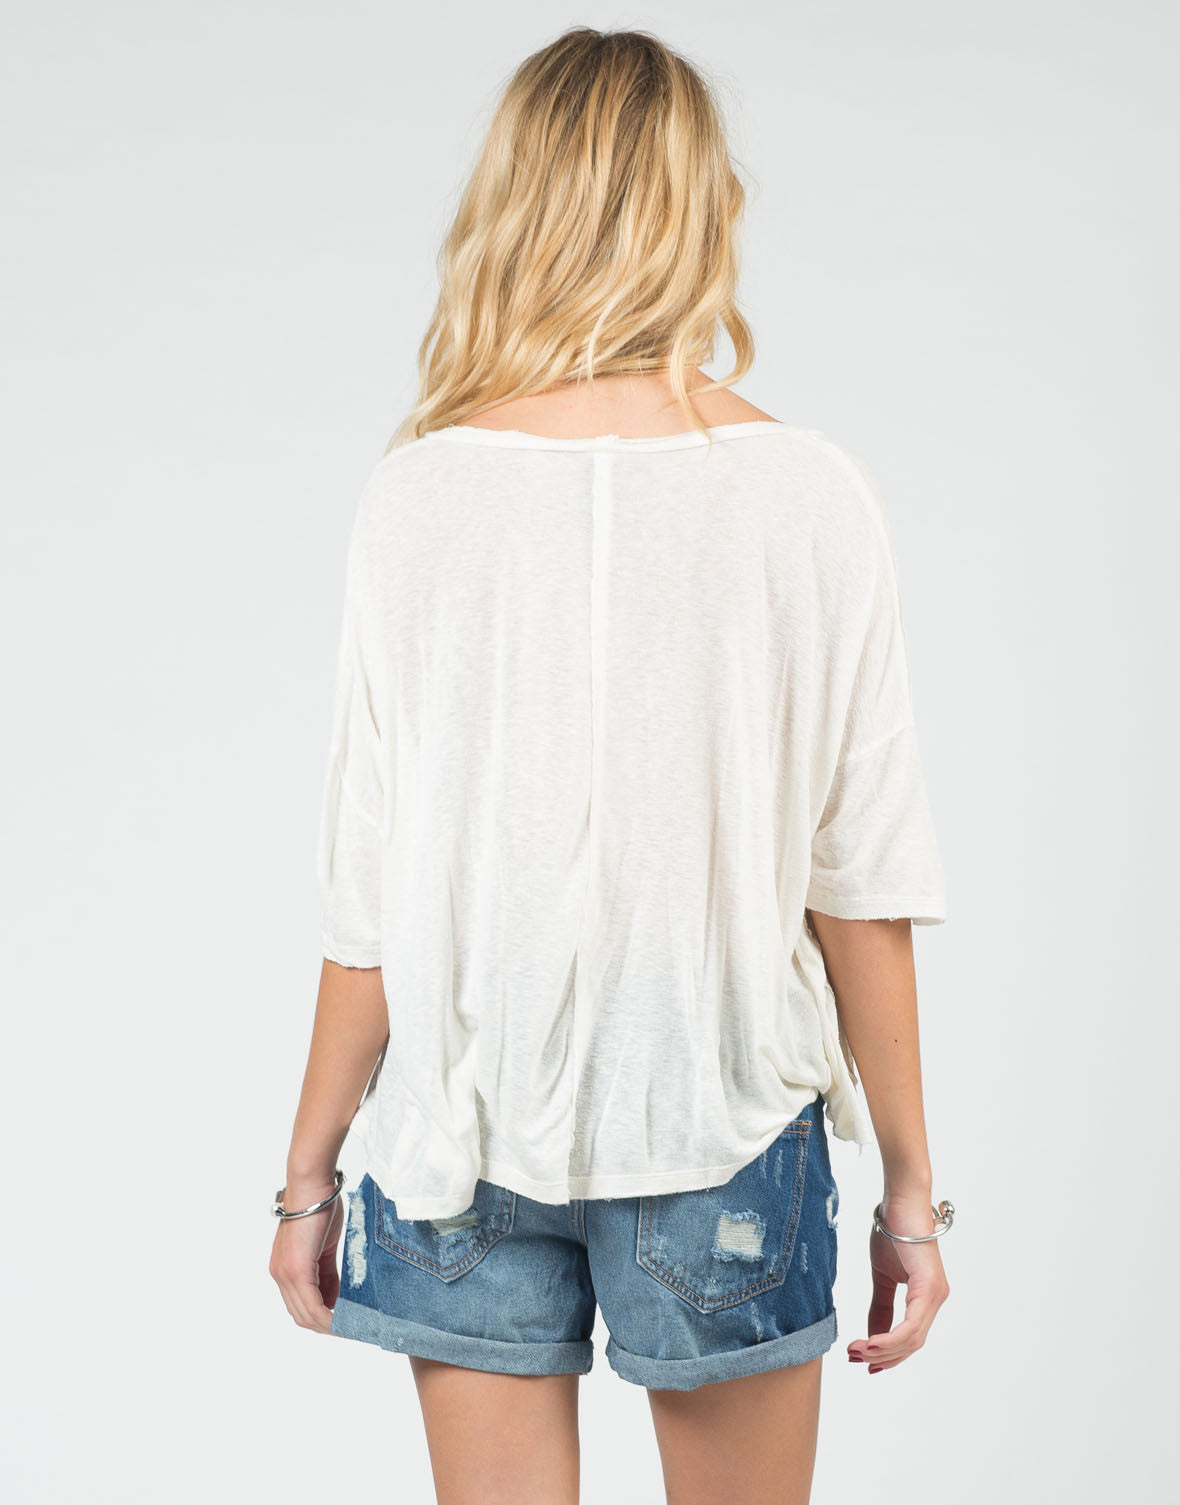 Back View of Oversized Vintage Dolman Tee